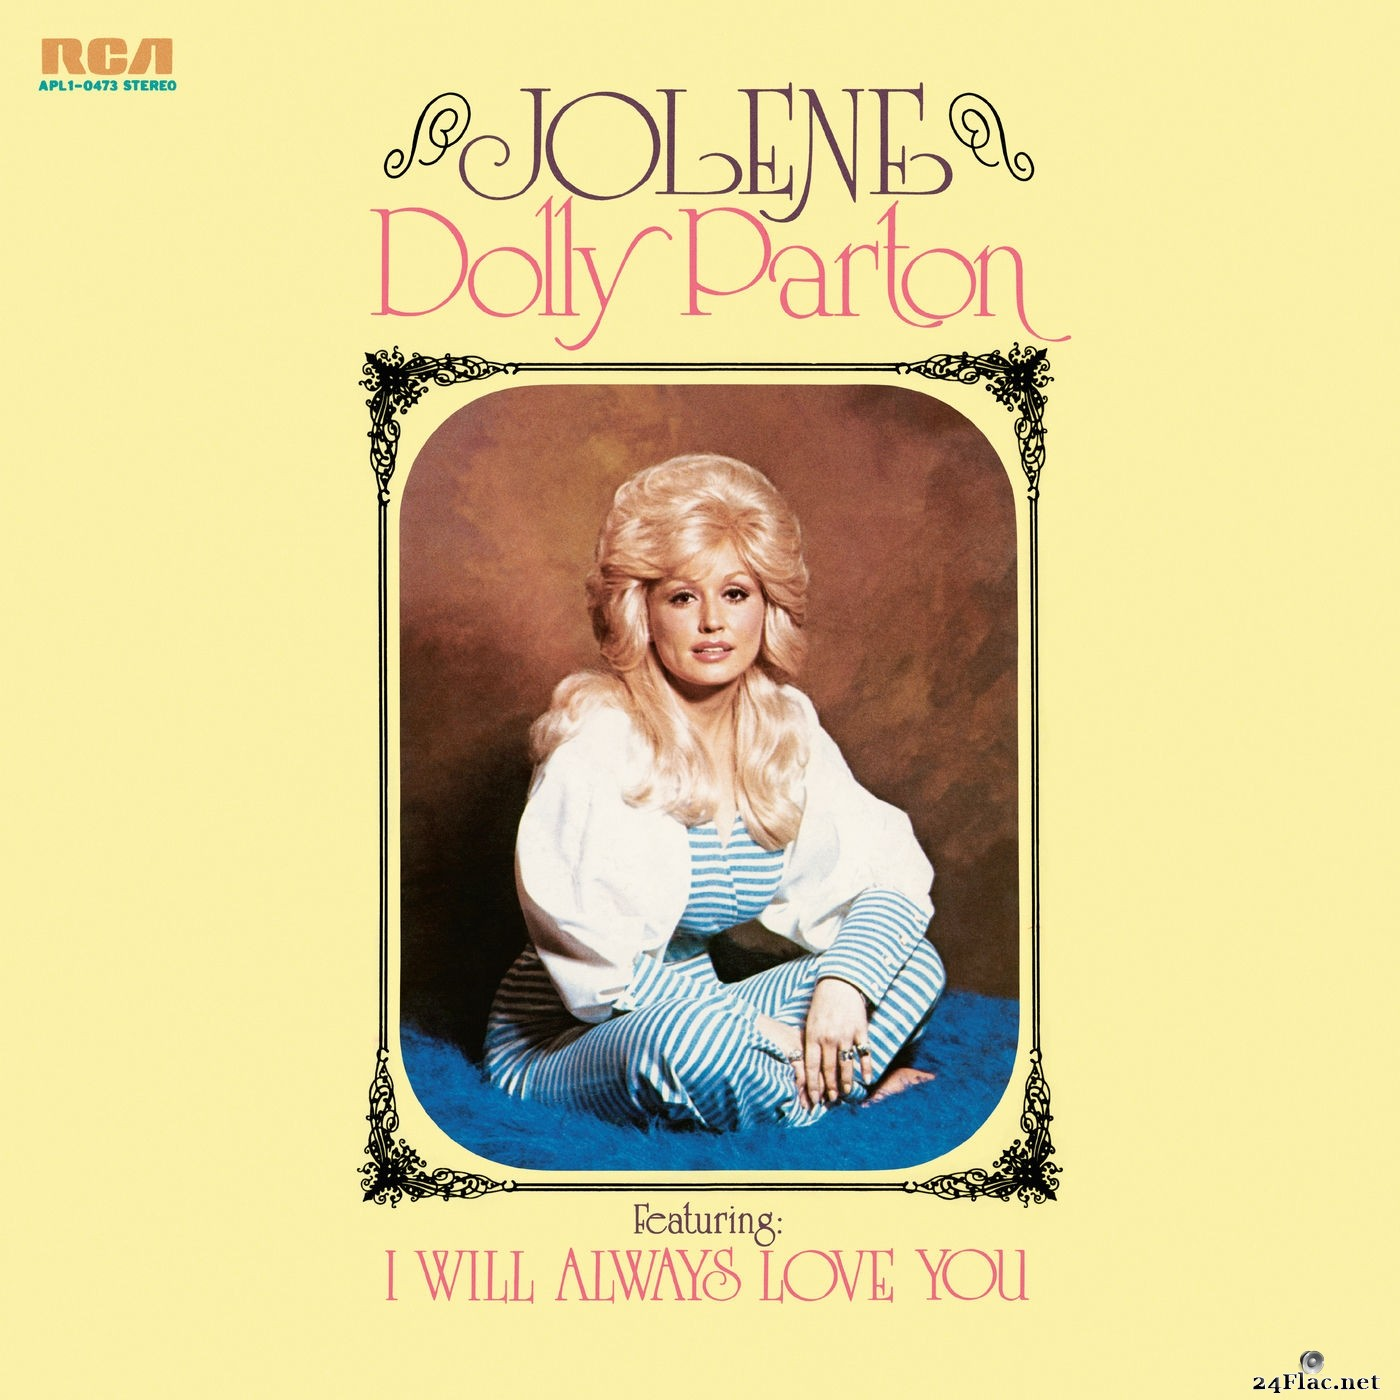 Dolly Parton - Jolene (2019) Hi-Res